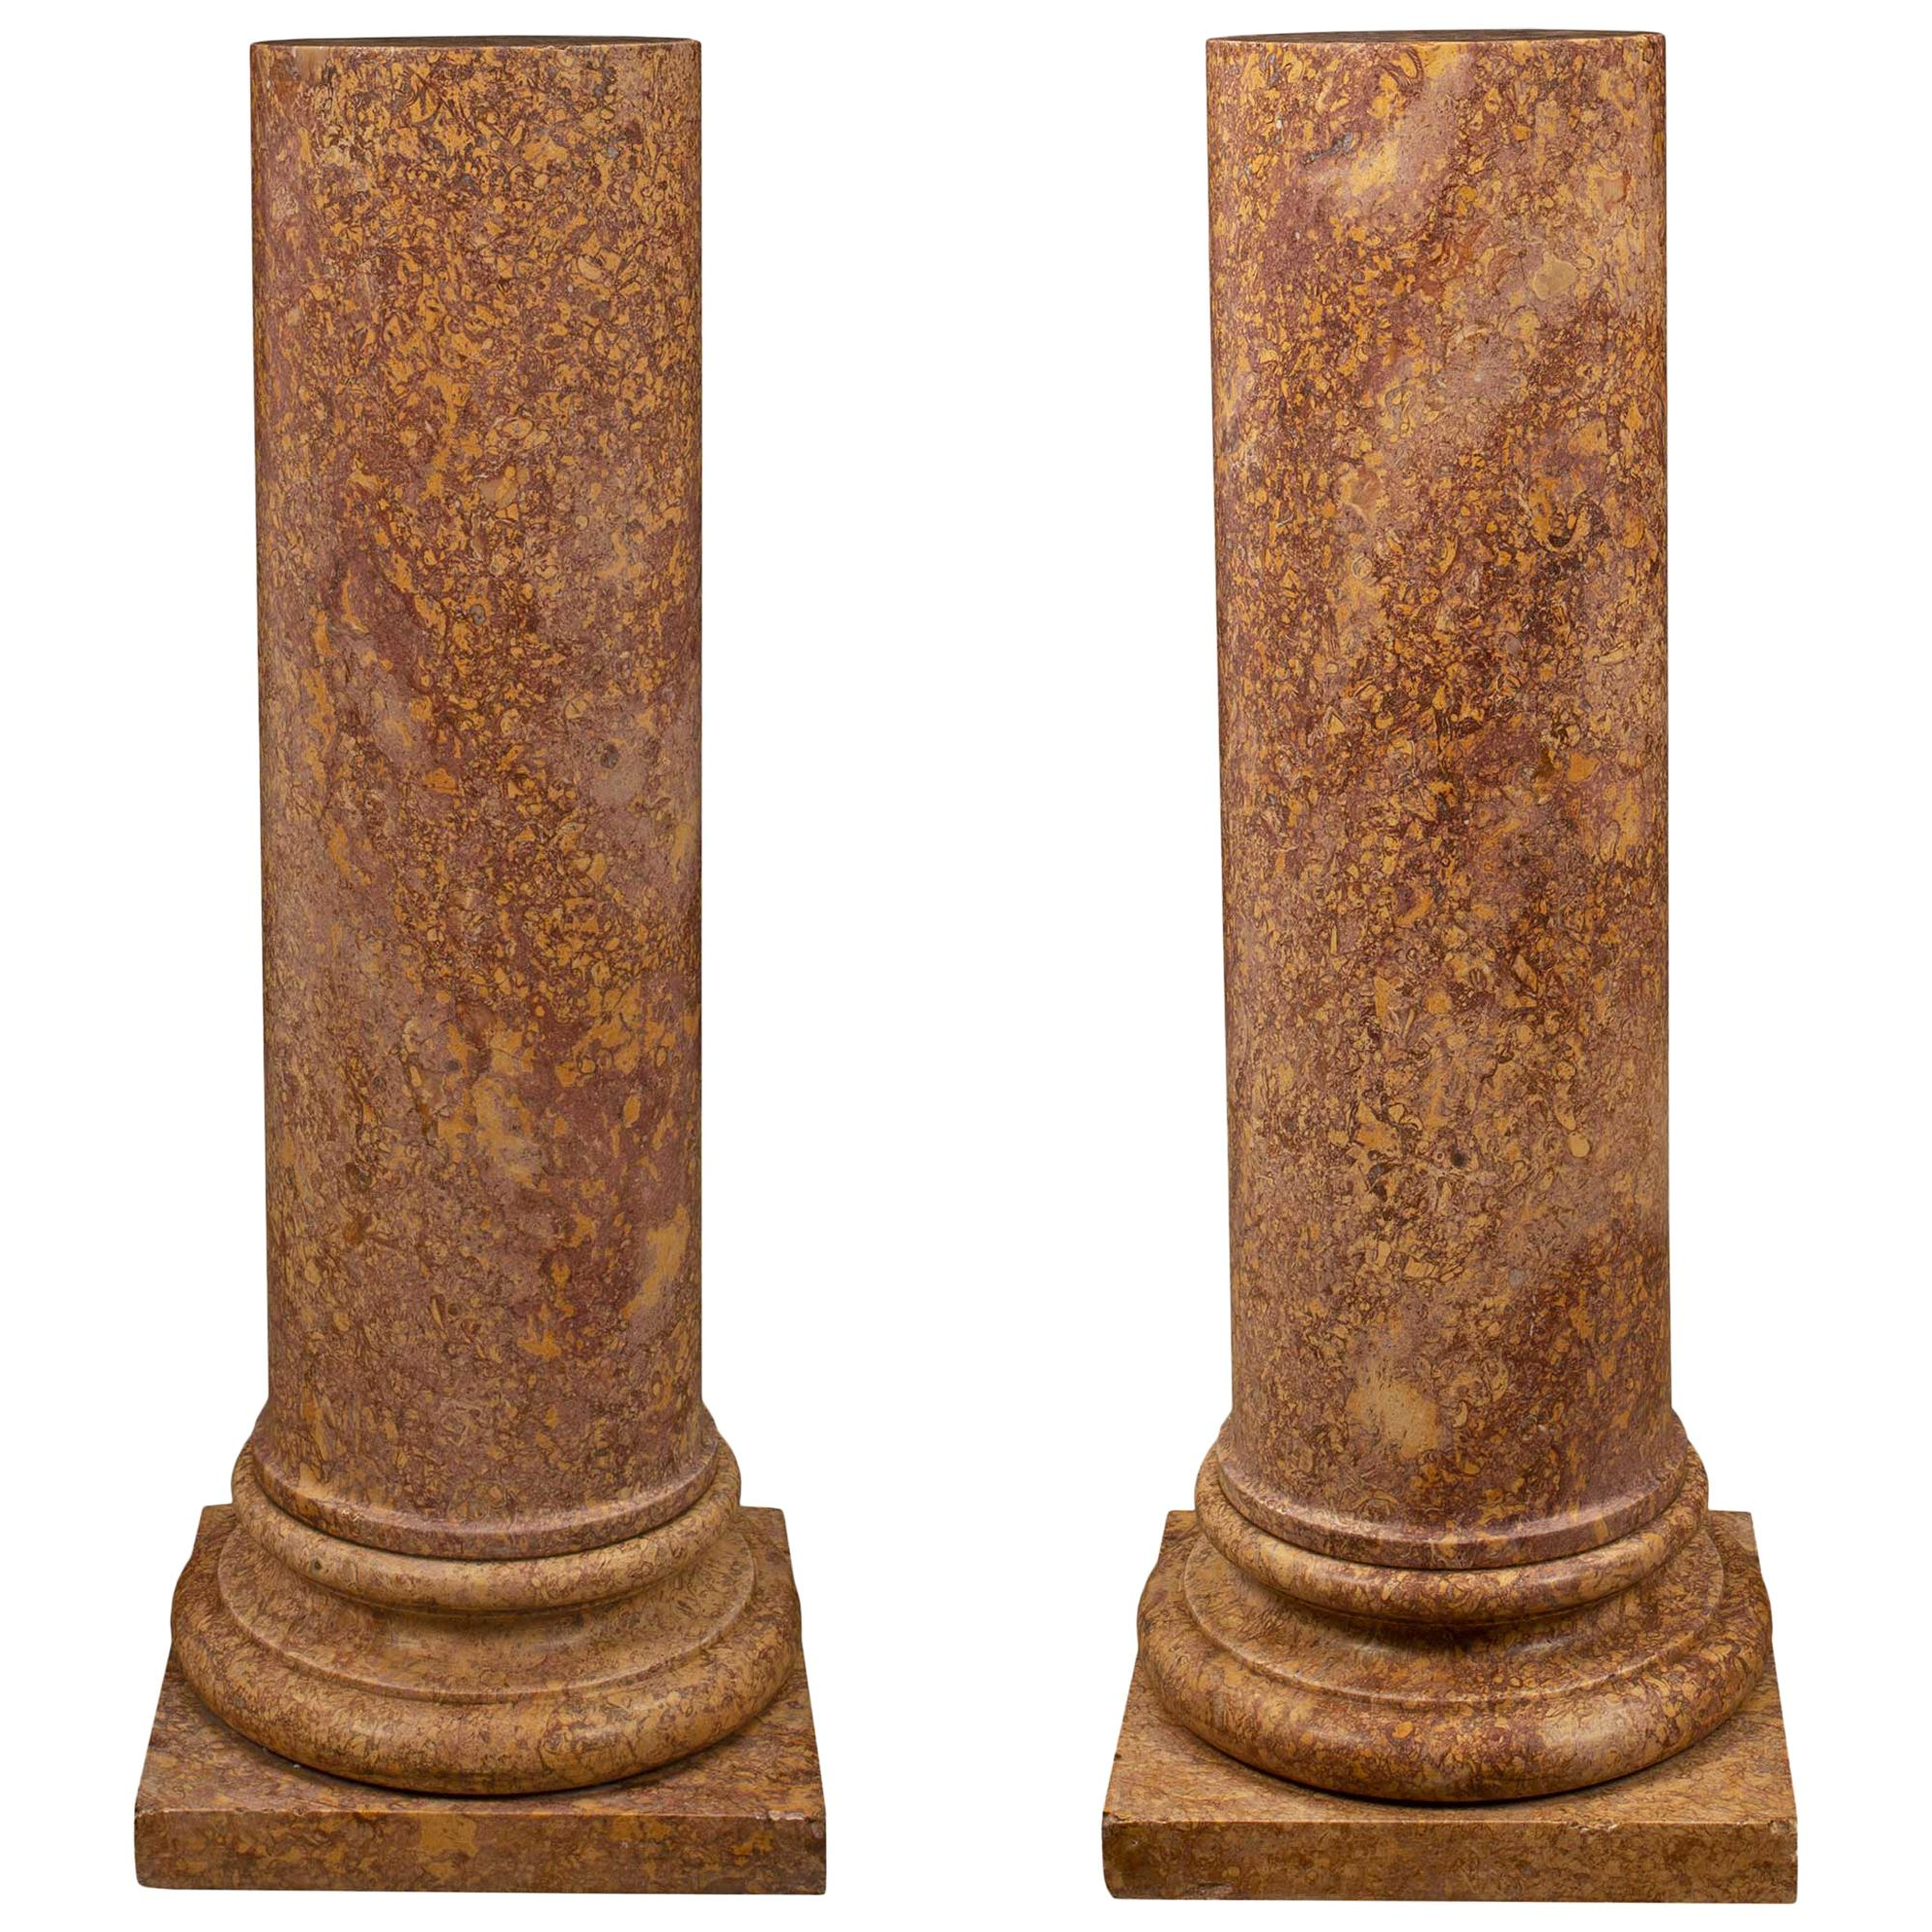 Italian 19th Century Neoclassical St. Marble Pedestal Columns